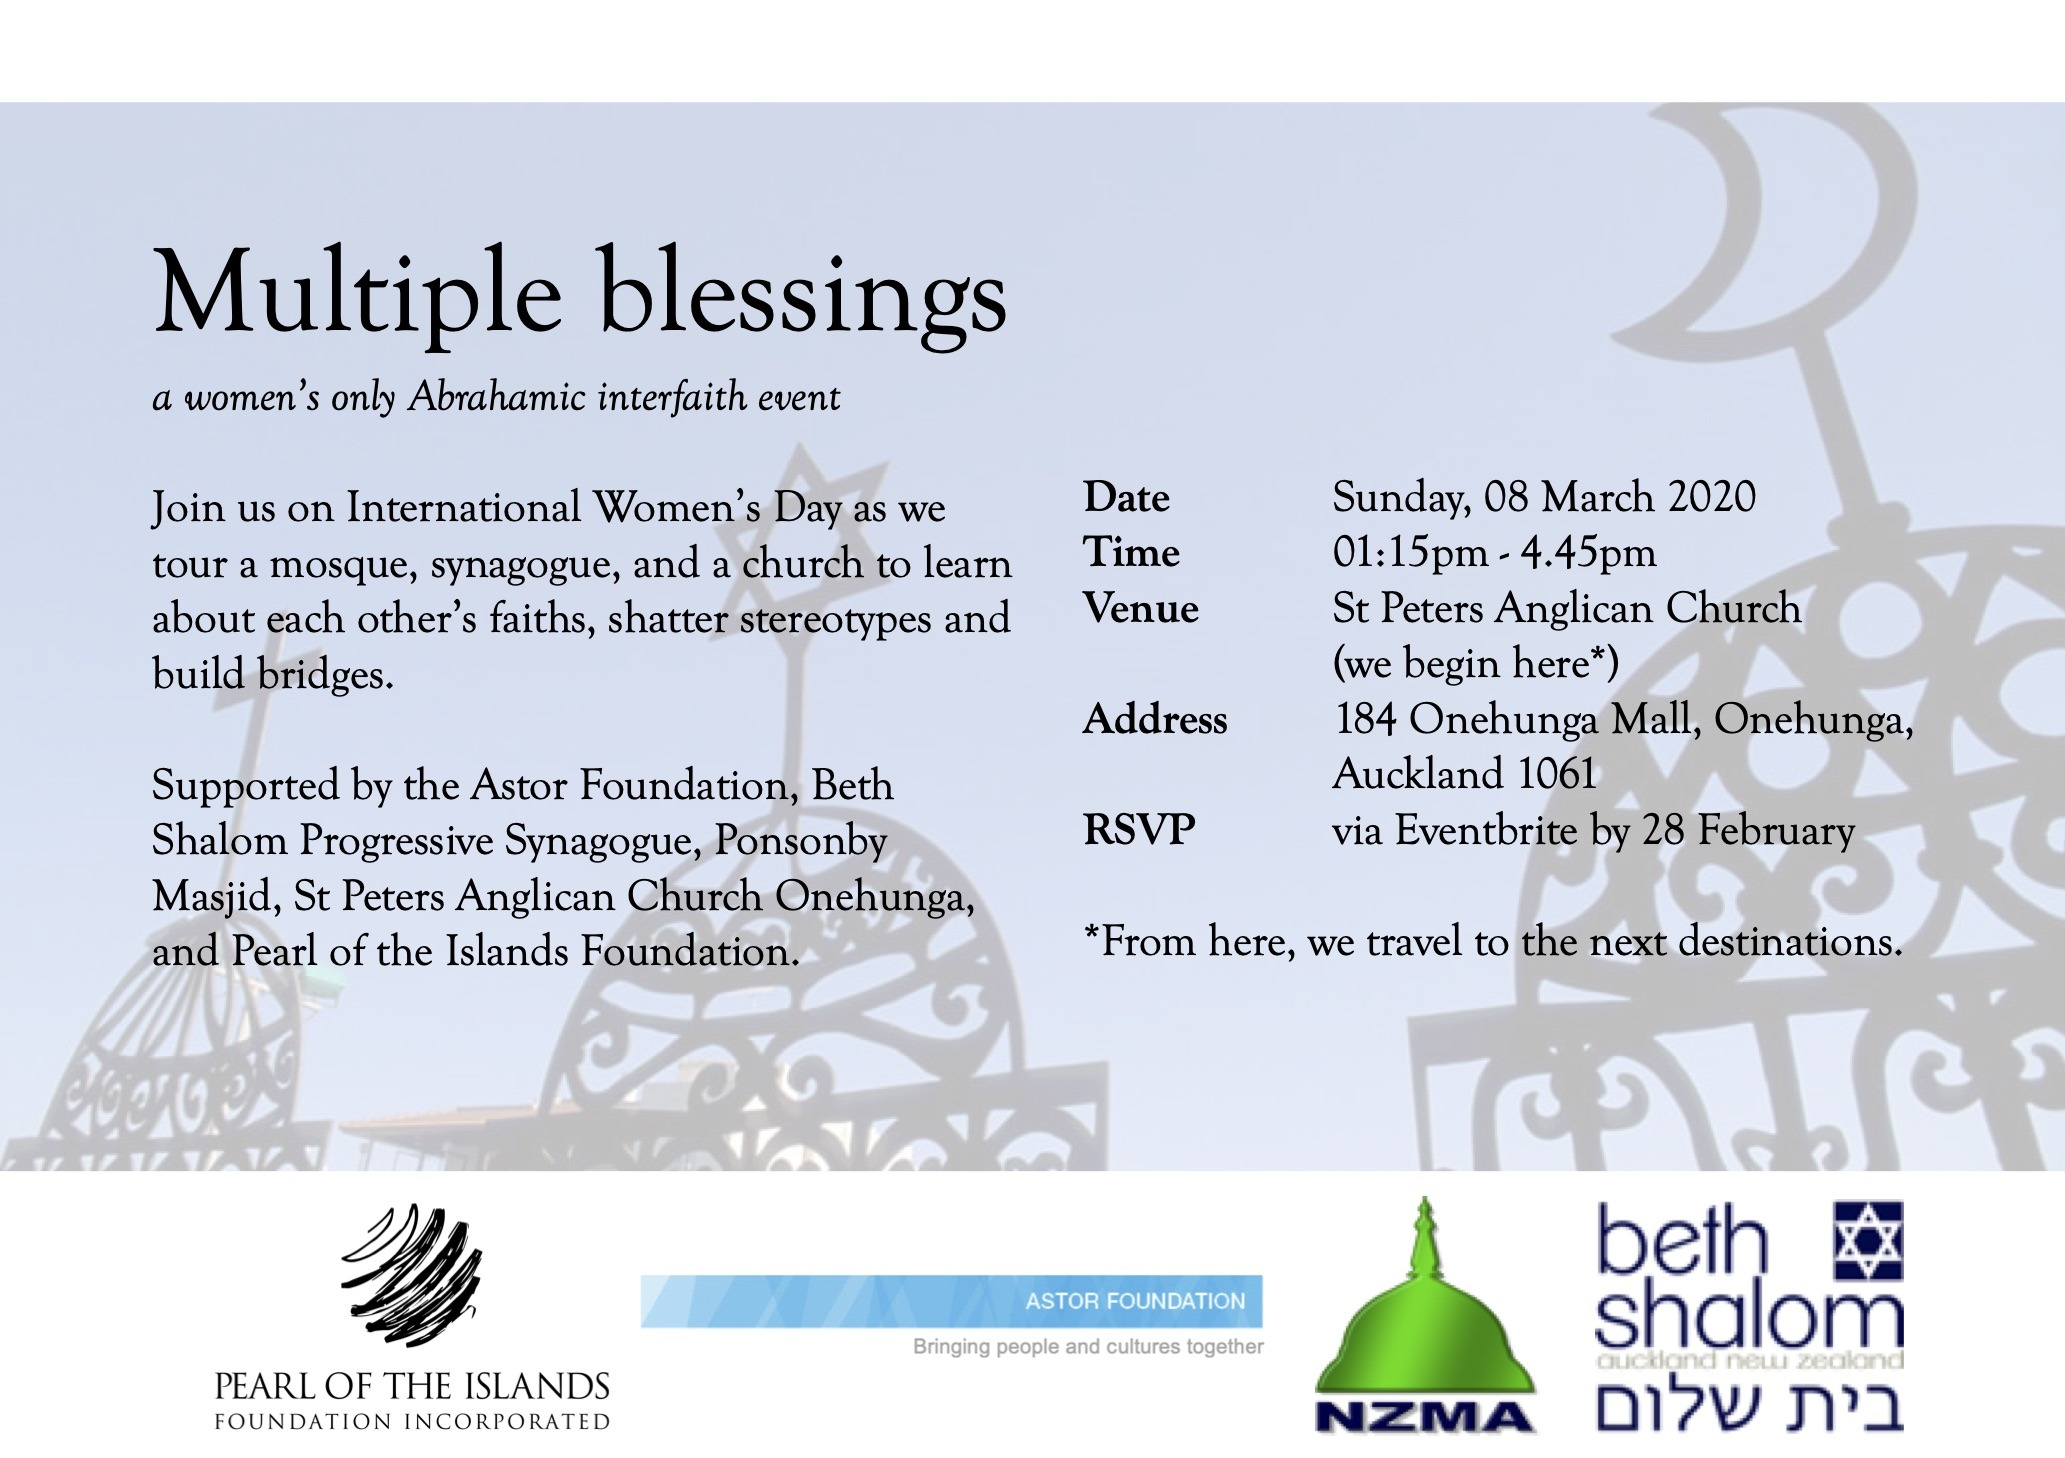 Women's only interfaith event: Multiple blessings